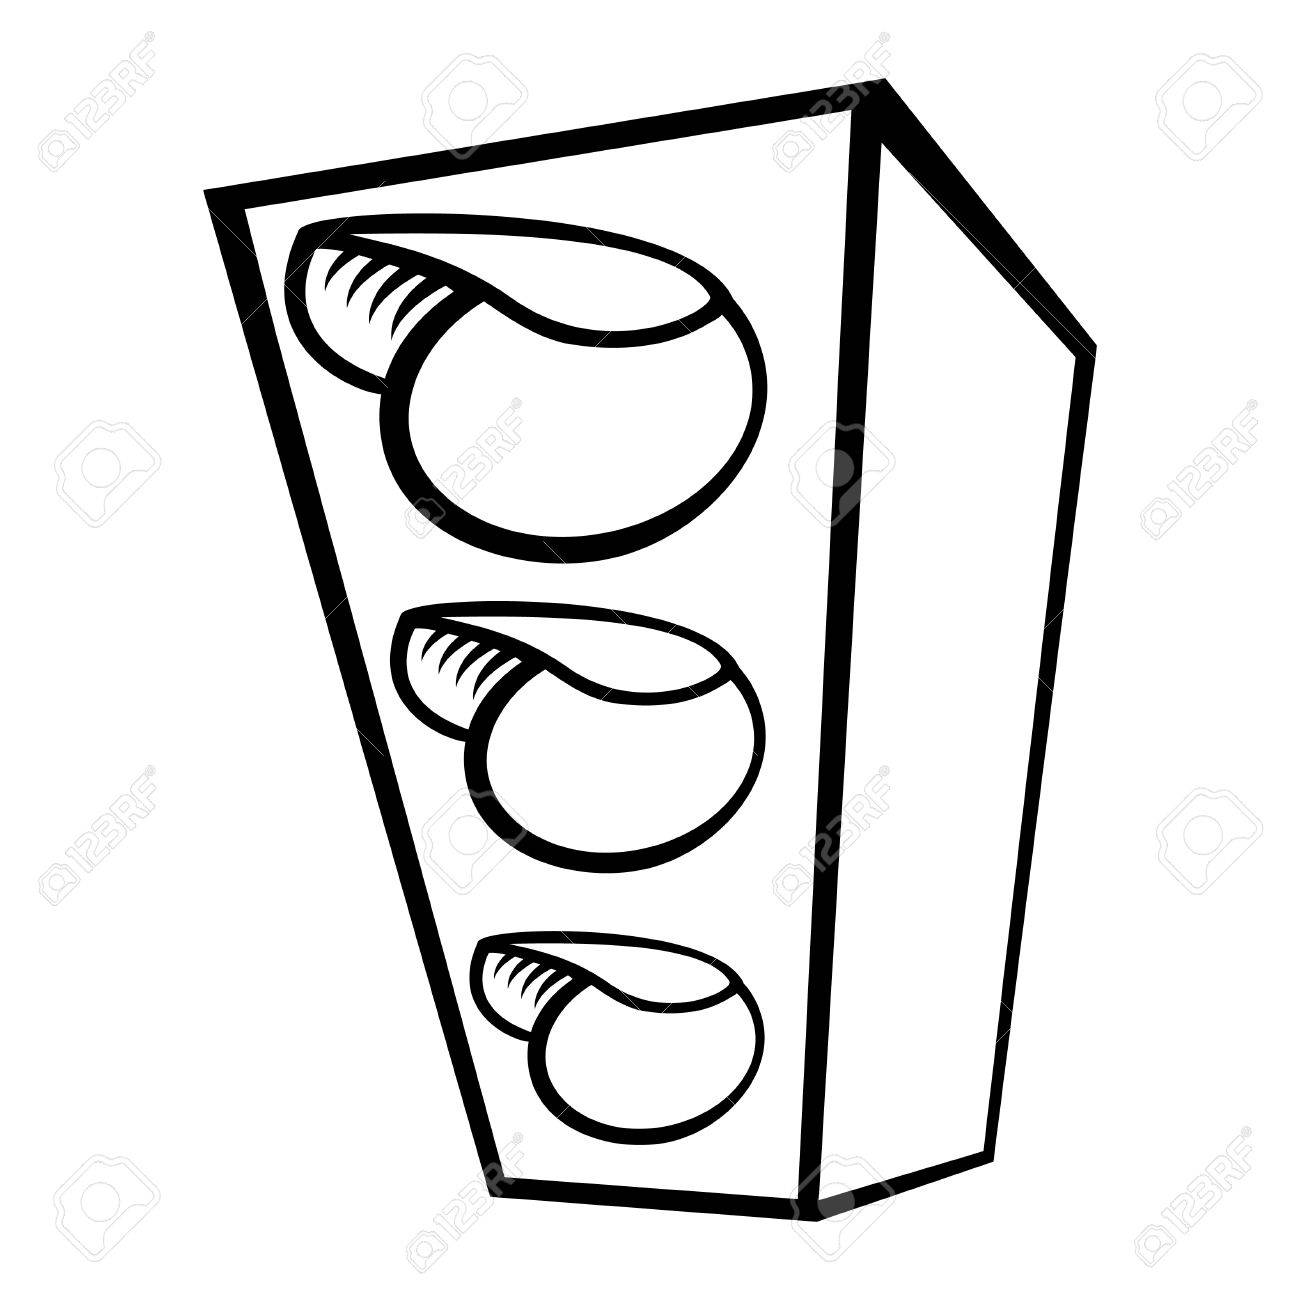 Traffic light clipart black and white 5 » Clipart Station.